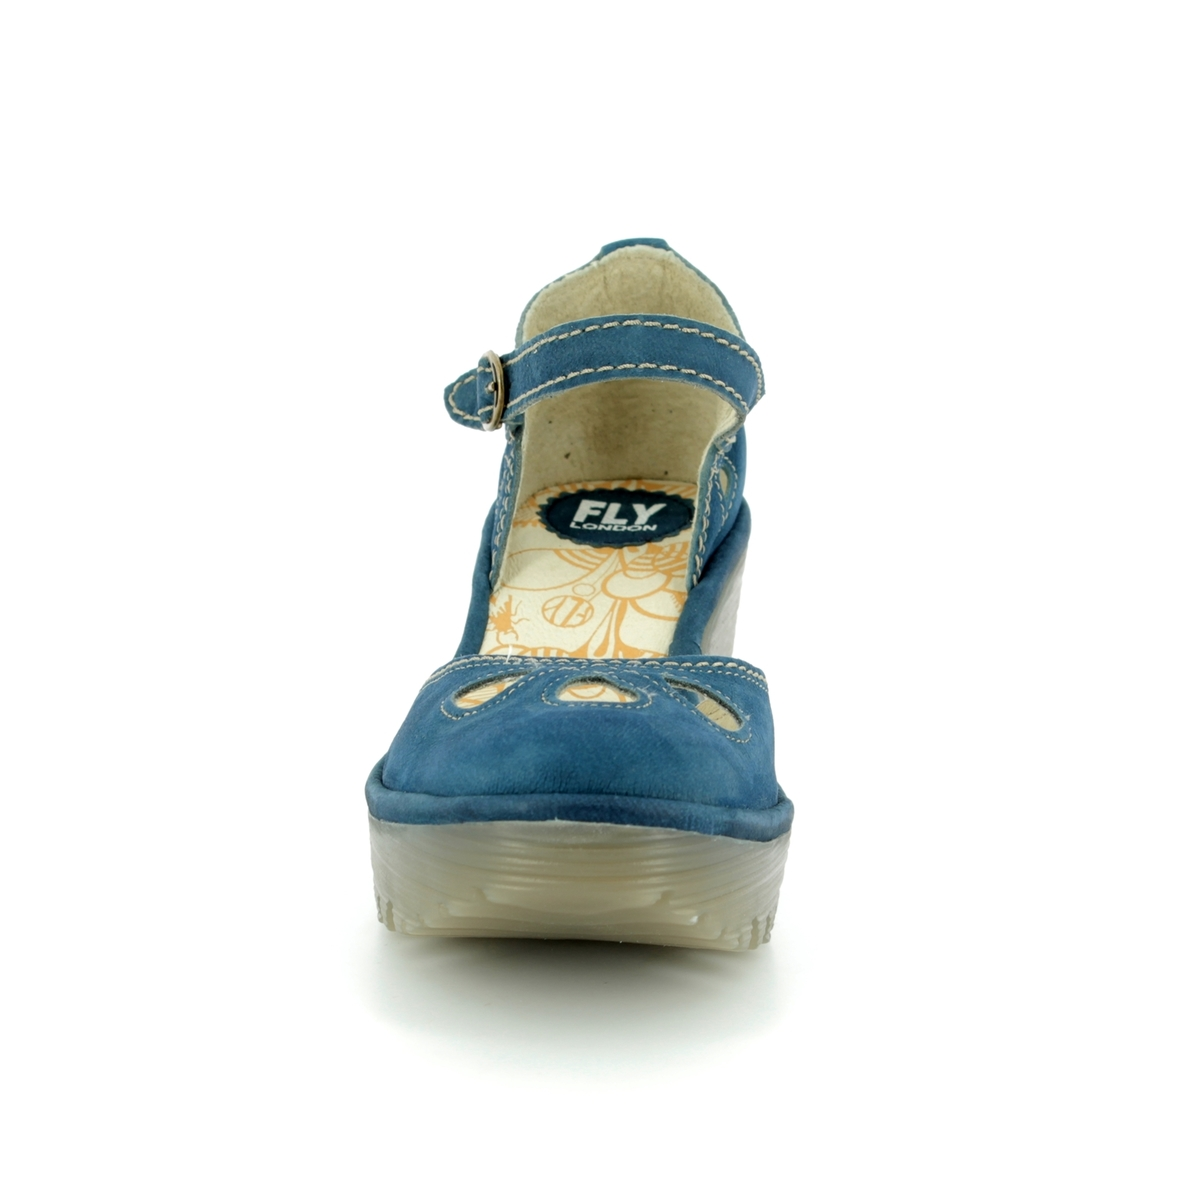 c1fd7c36349 Fly London Yuna P500016-118 Blue Wedge Shoes